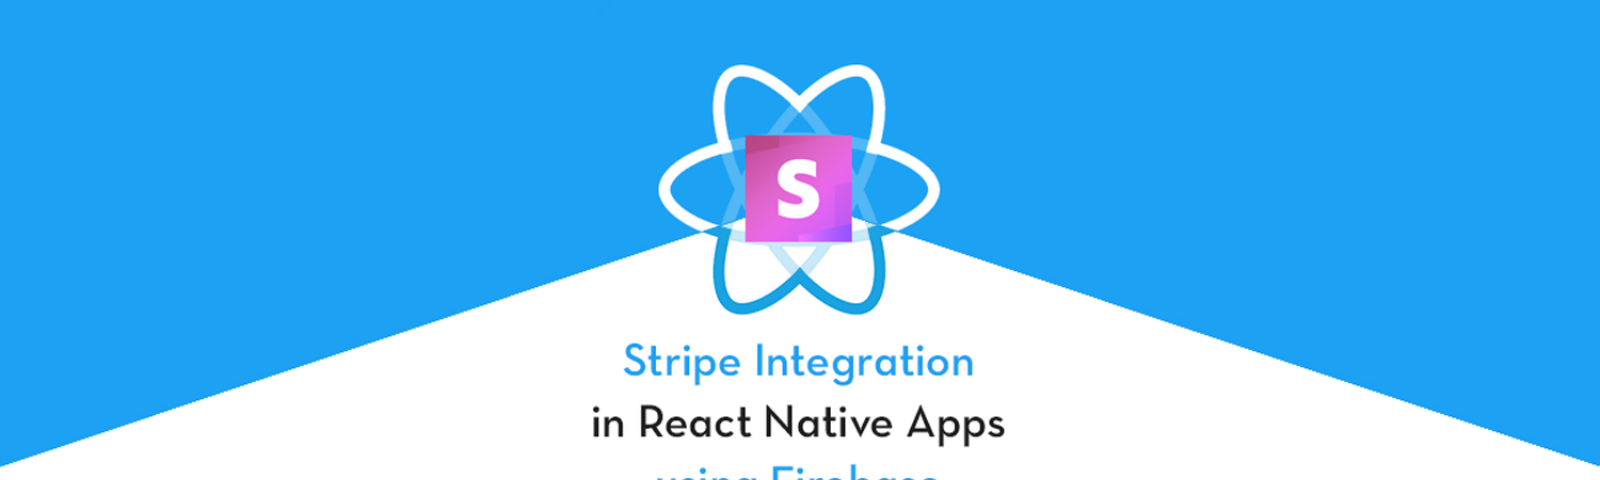 Stripe payment integration in React Native apps using Firebase